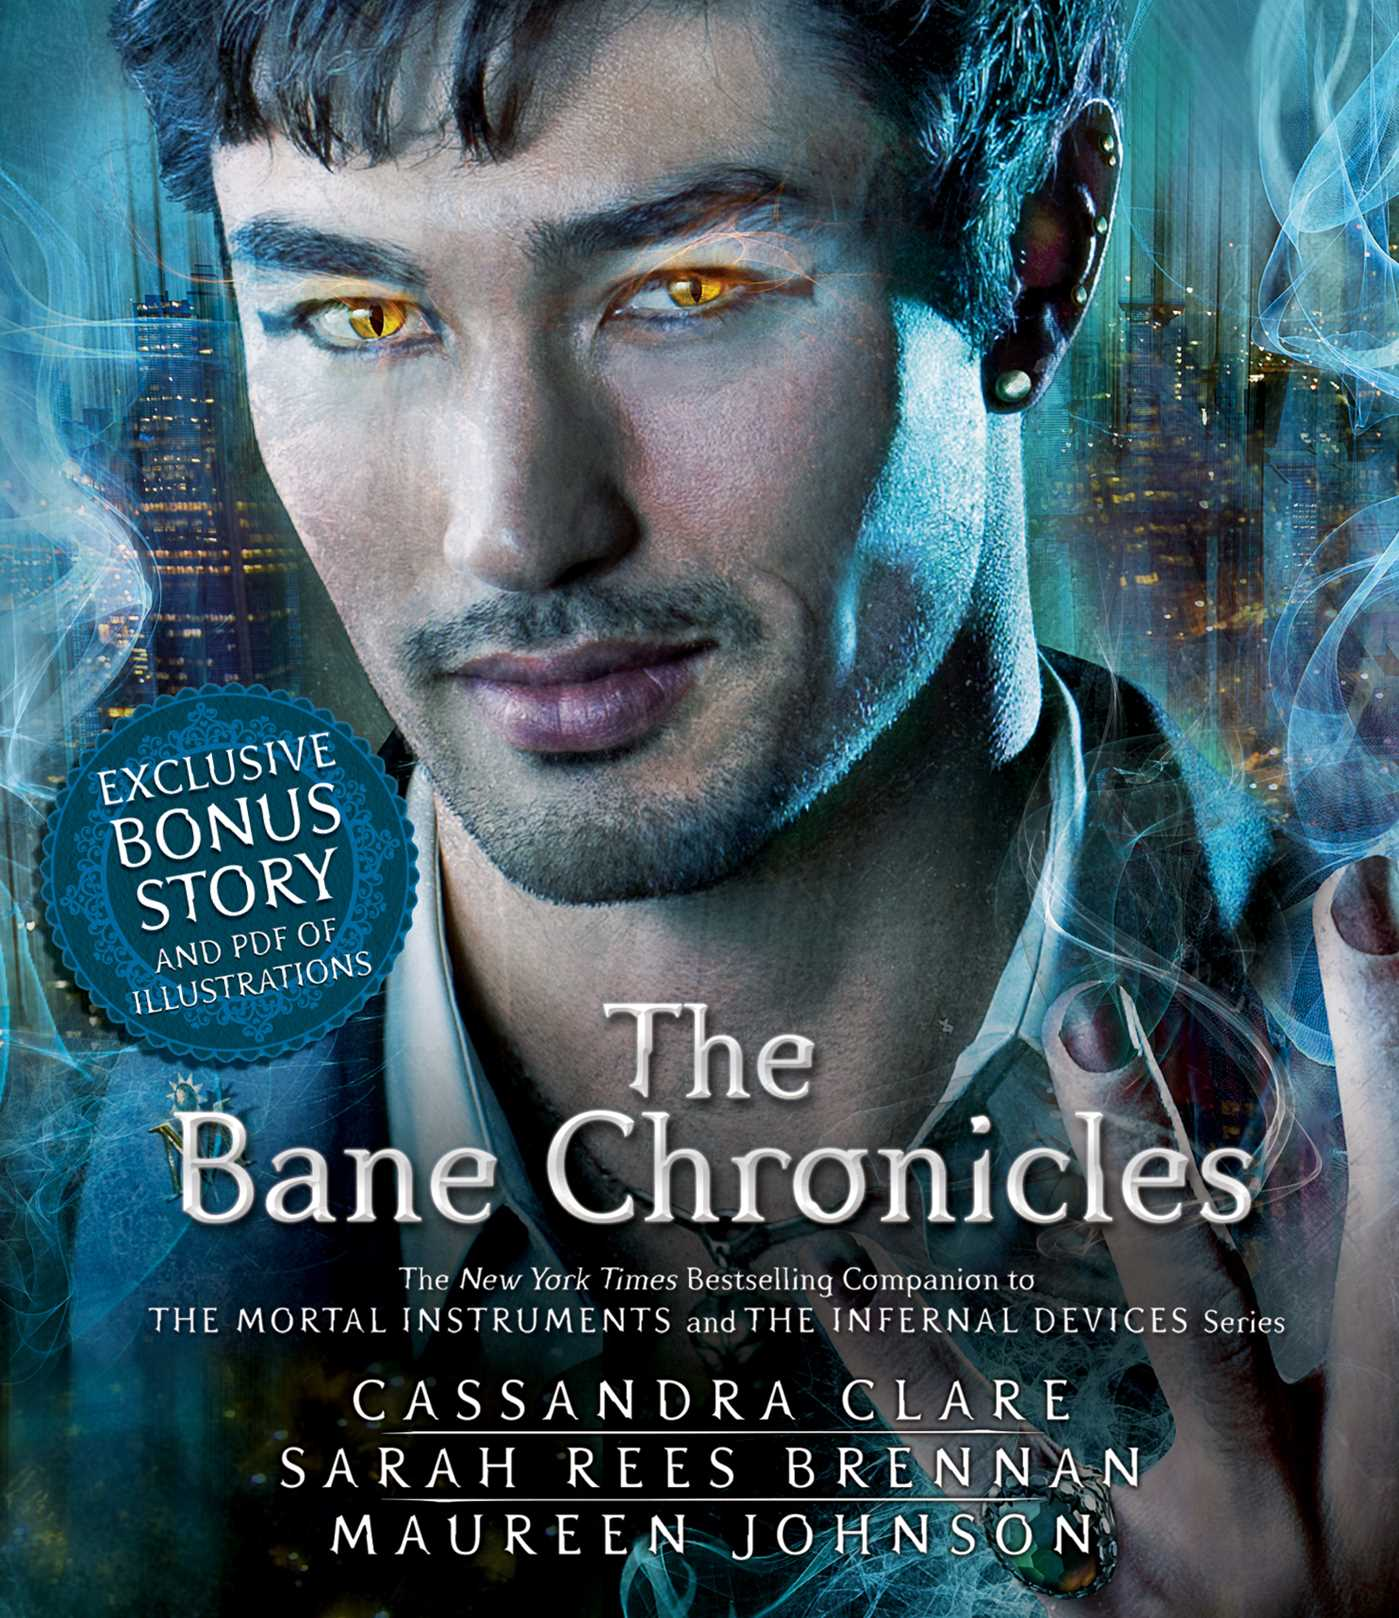 Bane-chronicles-9781442372863_hr